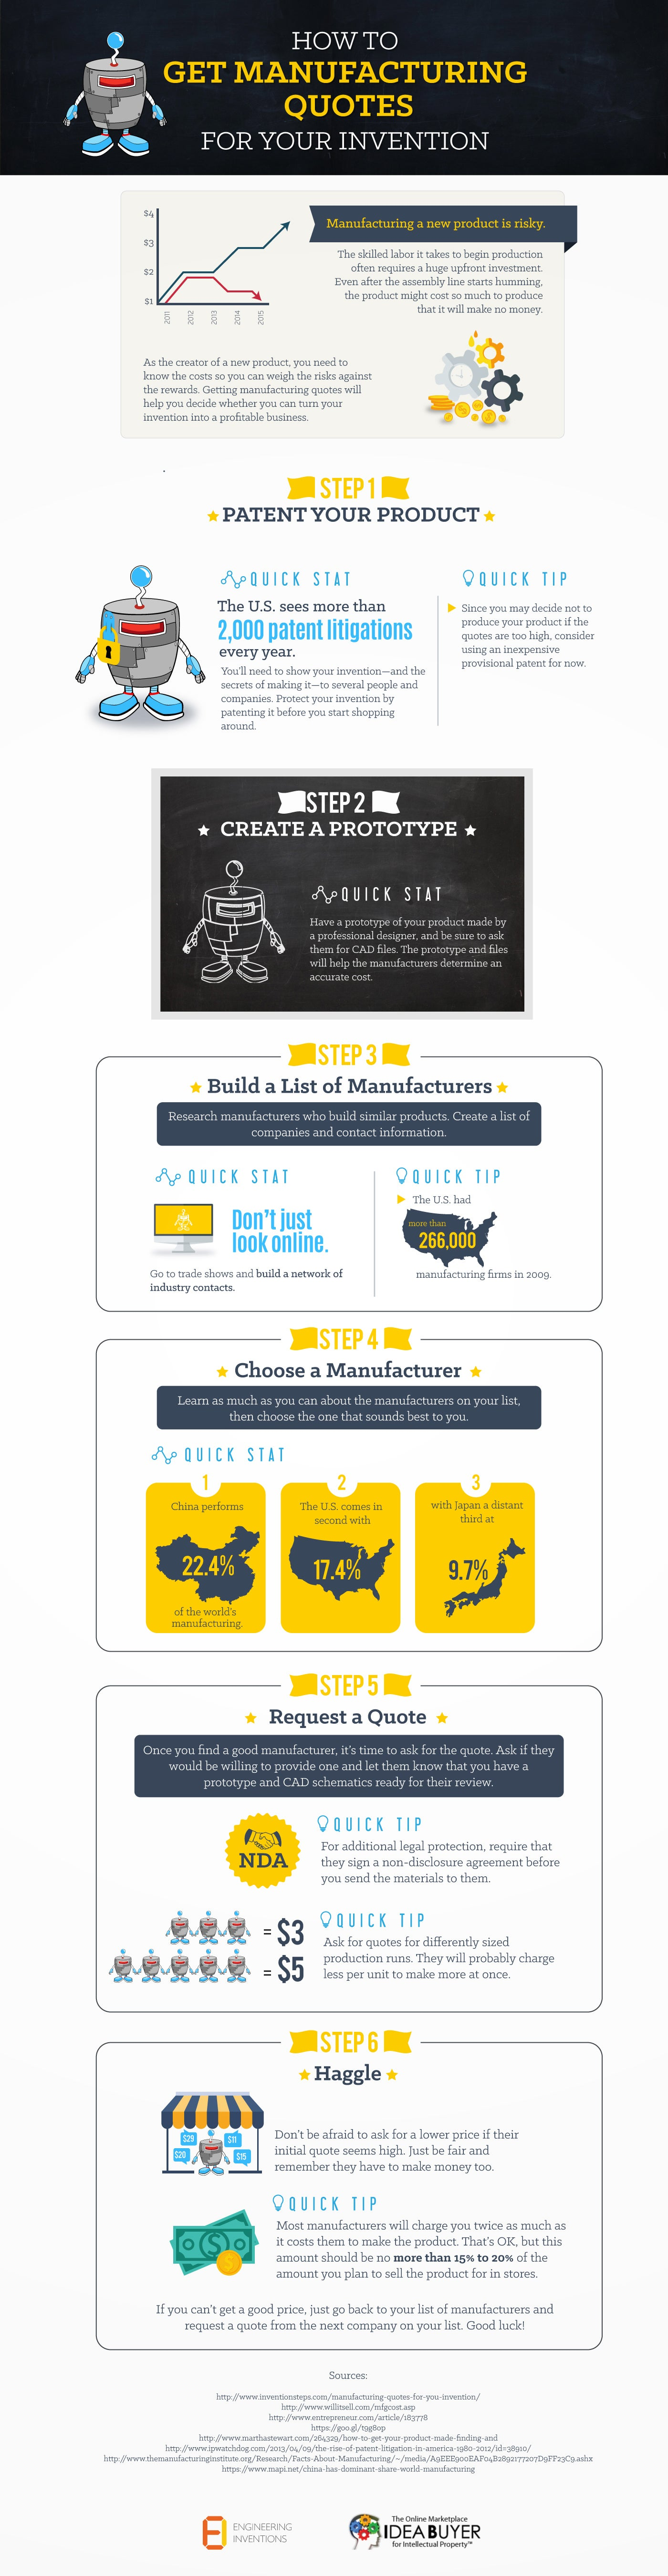 Have an Invention? Here's How to Make It Into an Actual Product. (Infographic)